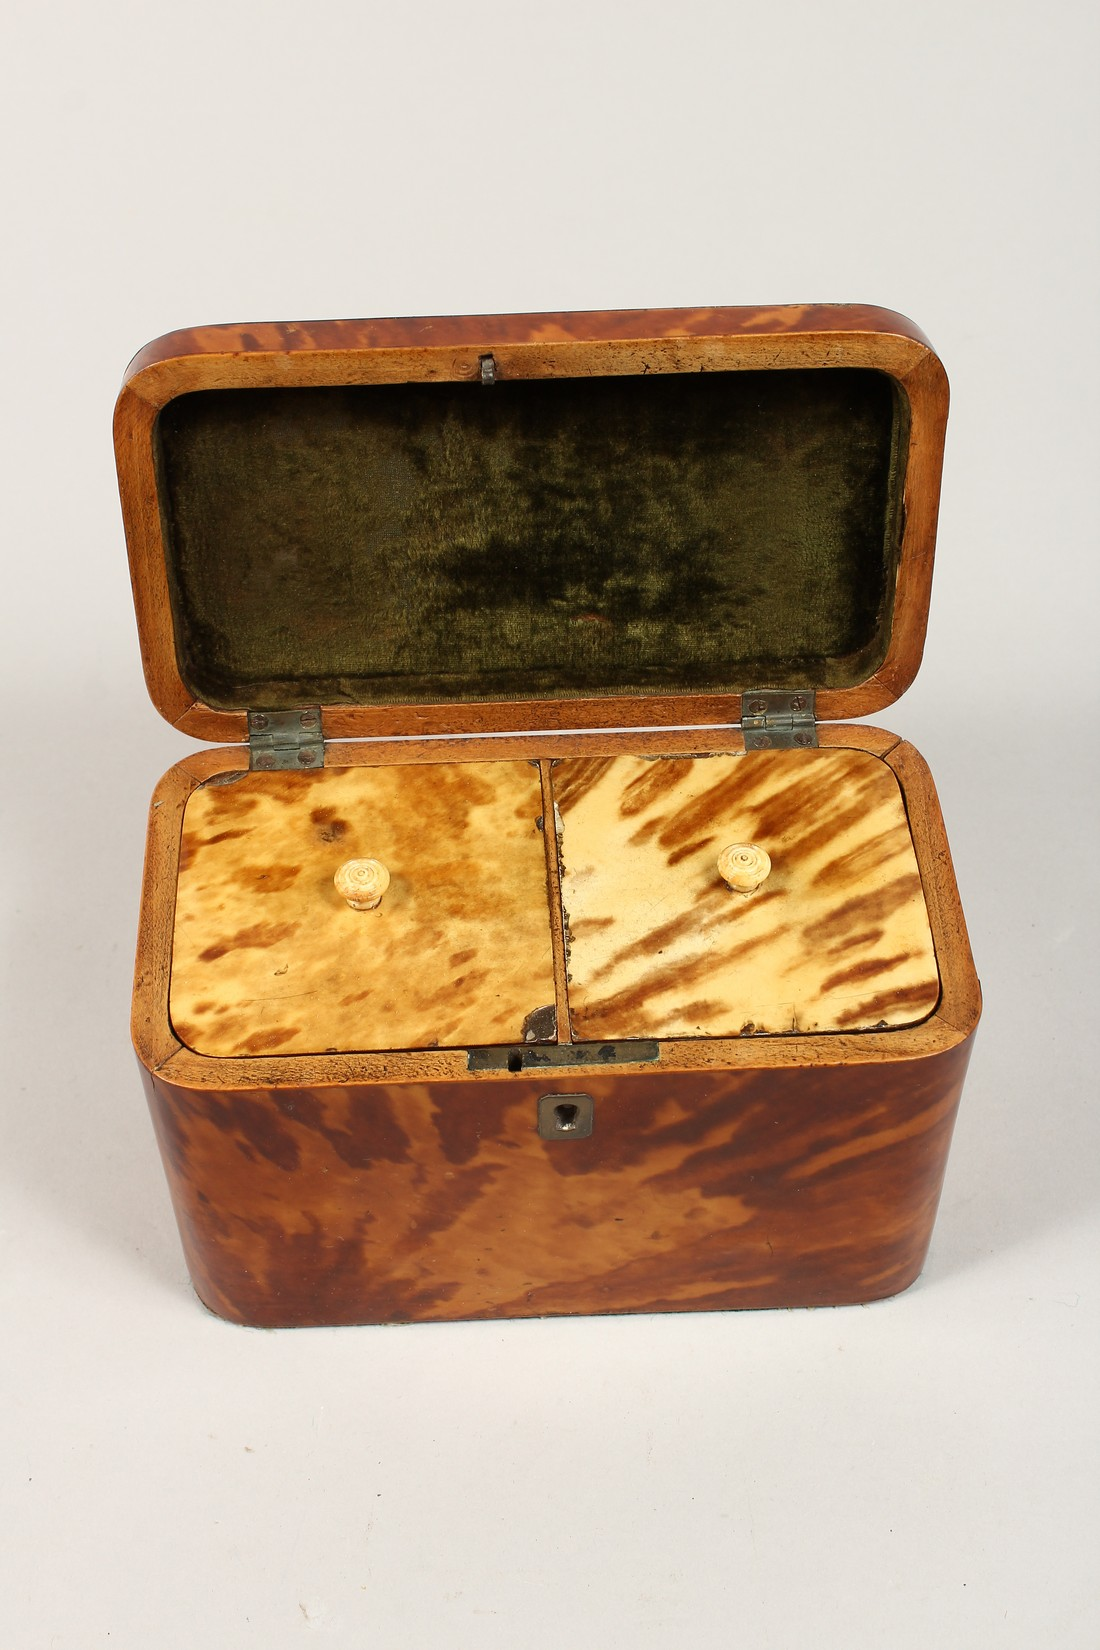 A GOOD REGENCY TORTOISESHELL TWO DIVISION TEA CADDY of rectangular form. 6.75ins high. - Image 7 of 7